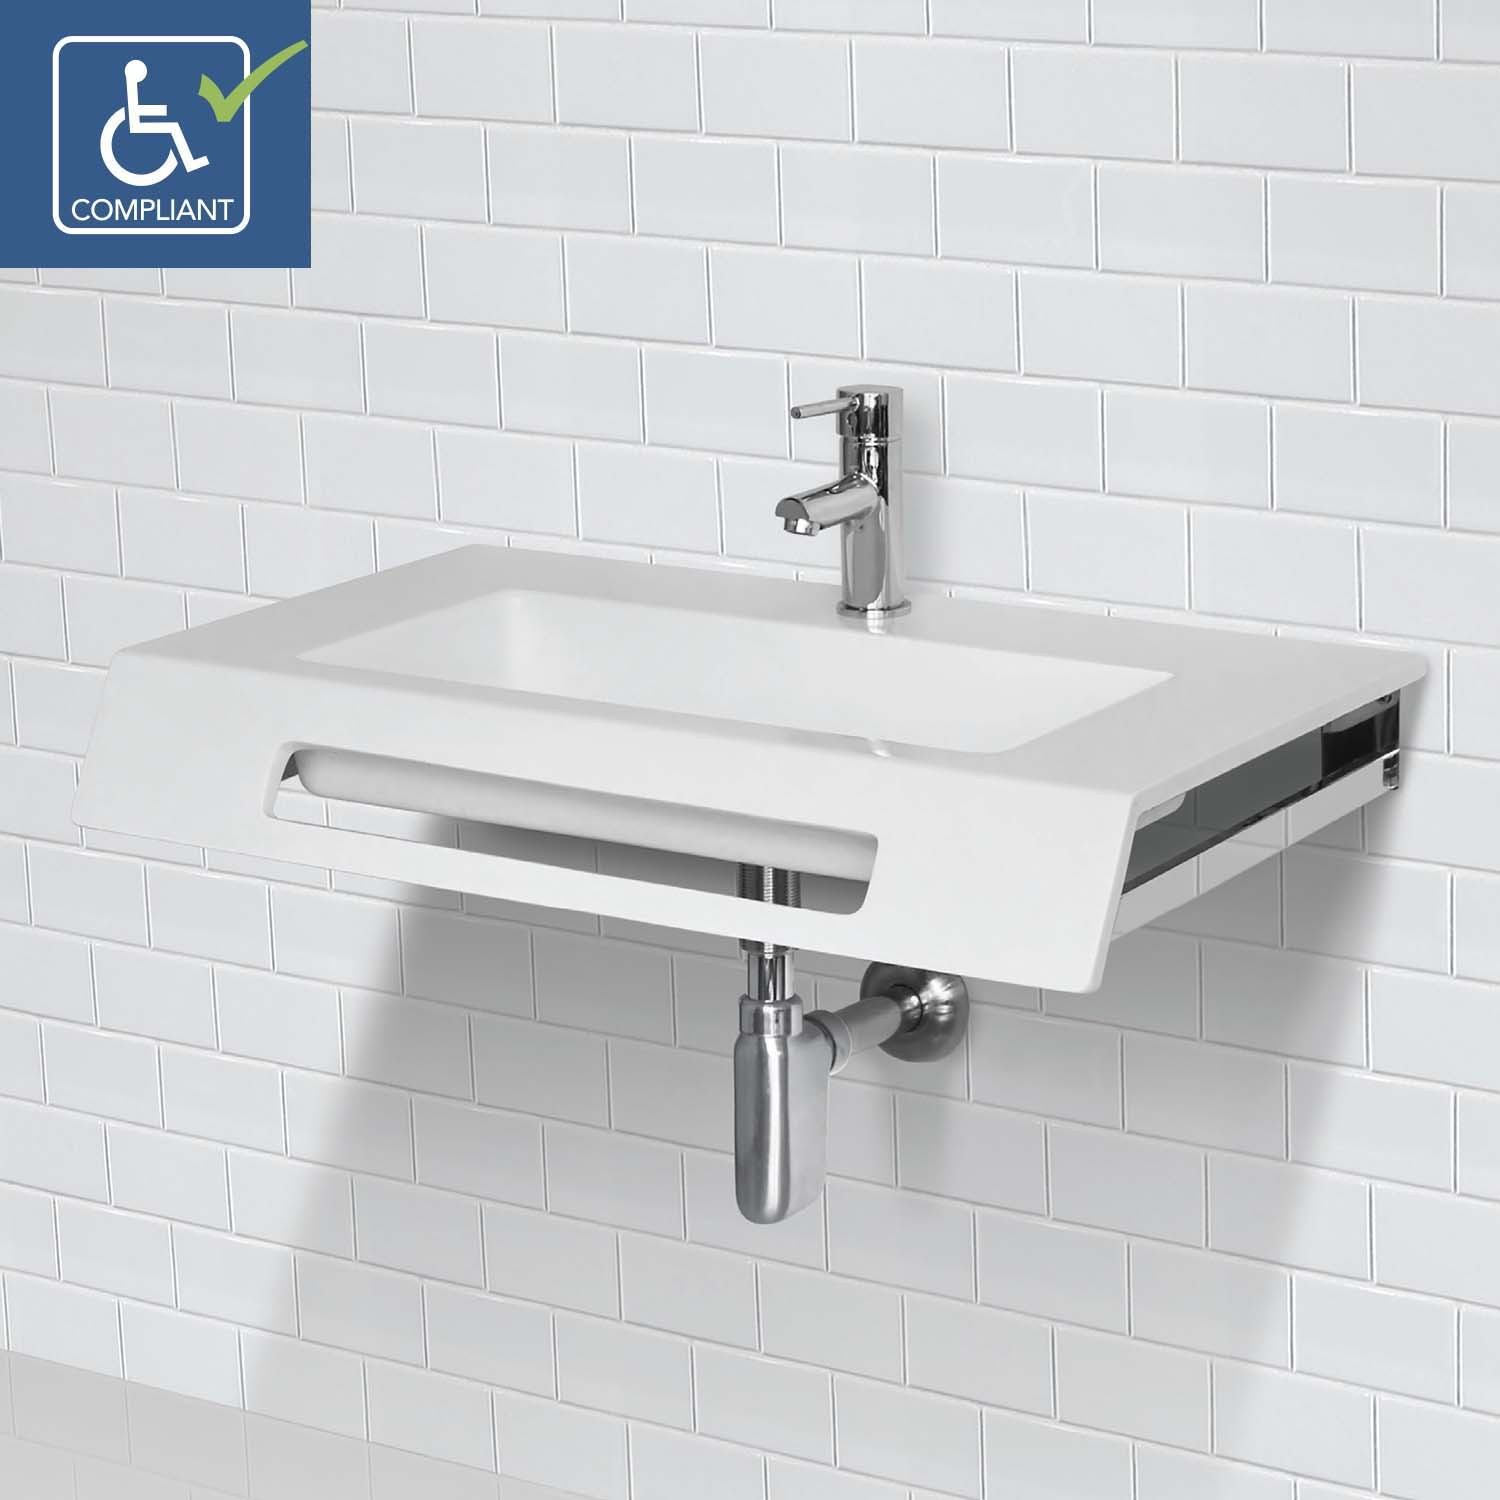 Decolav Ellie 1835 Ssa Solid Surface Ada Compliant Wall Mount Bathroom Sink